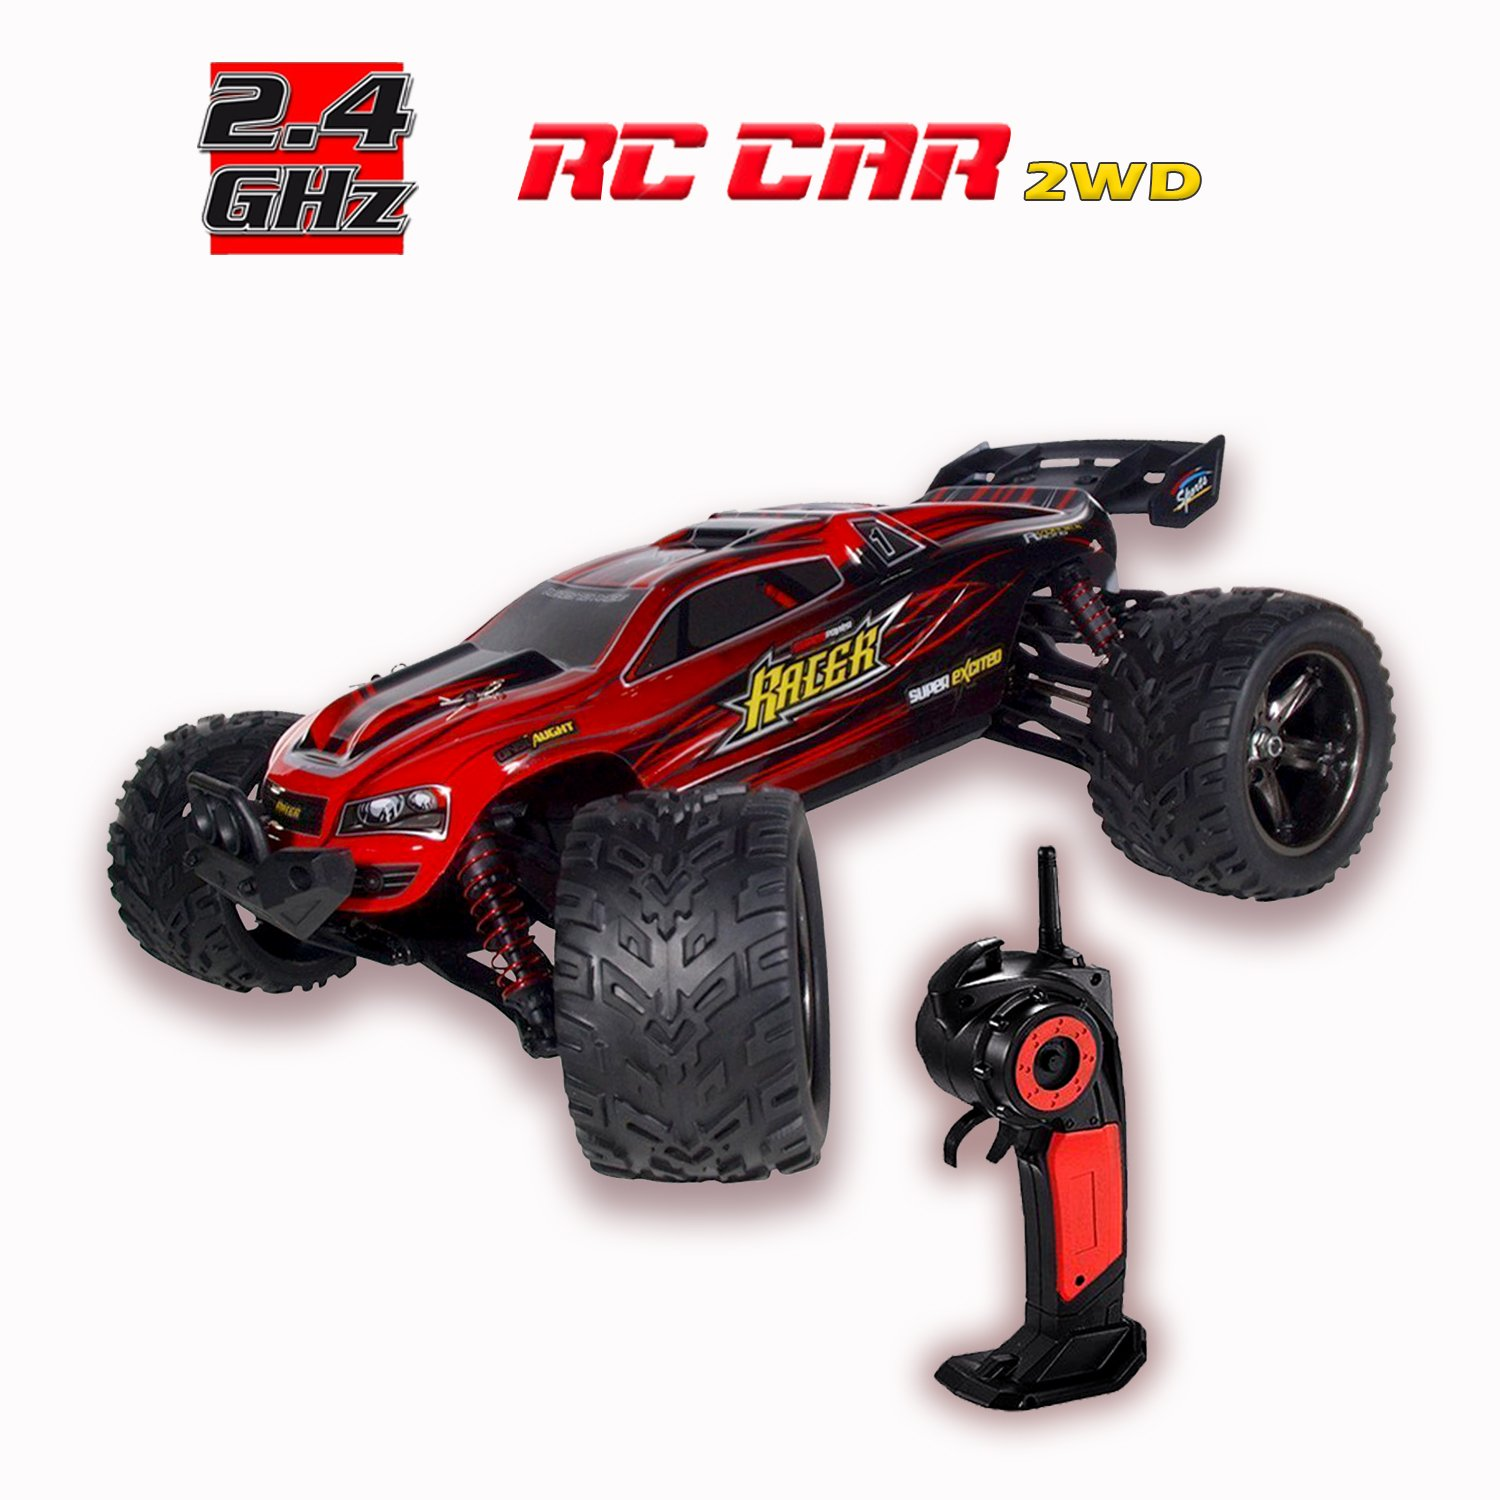 Amazon GoStock 1 12 Scale 2 4Ghz 2WD Radio Controlled RC Drift Cars Red Toys & Games